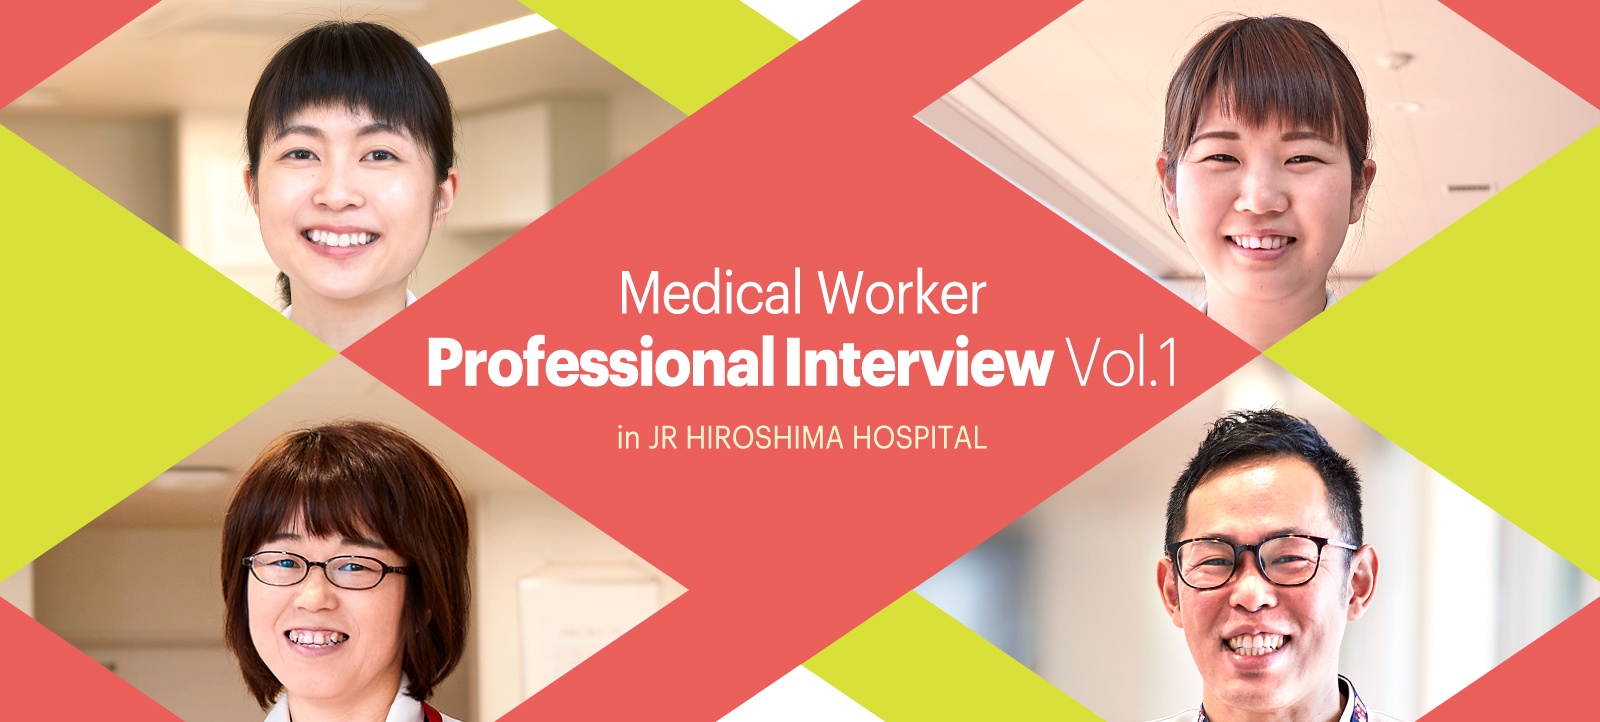 Medical Worker Professional Interview Vol.1